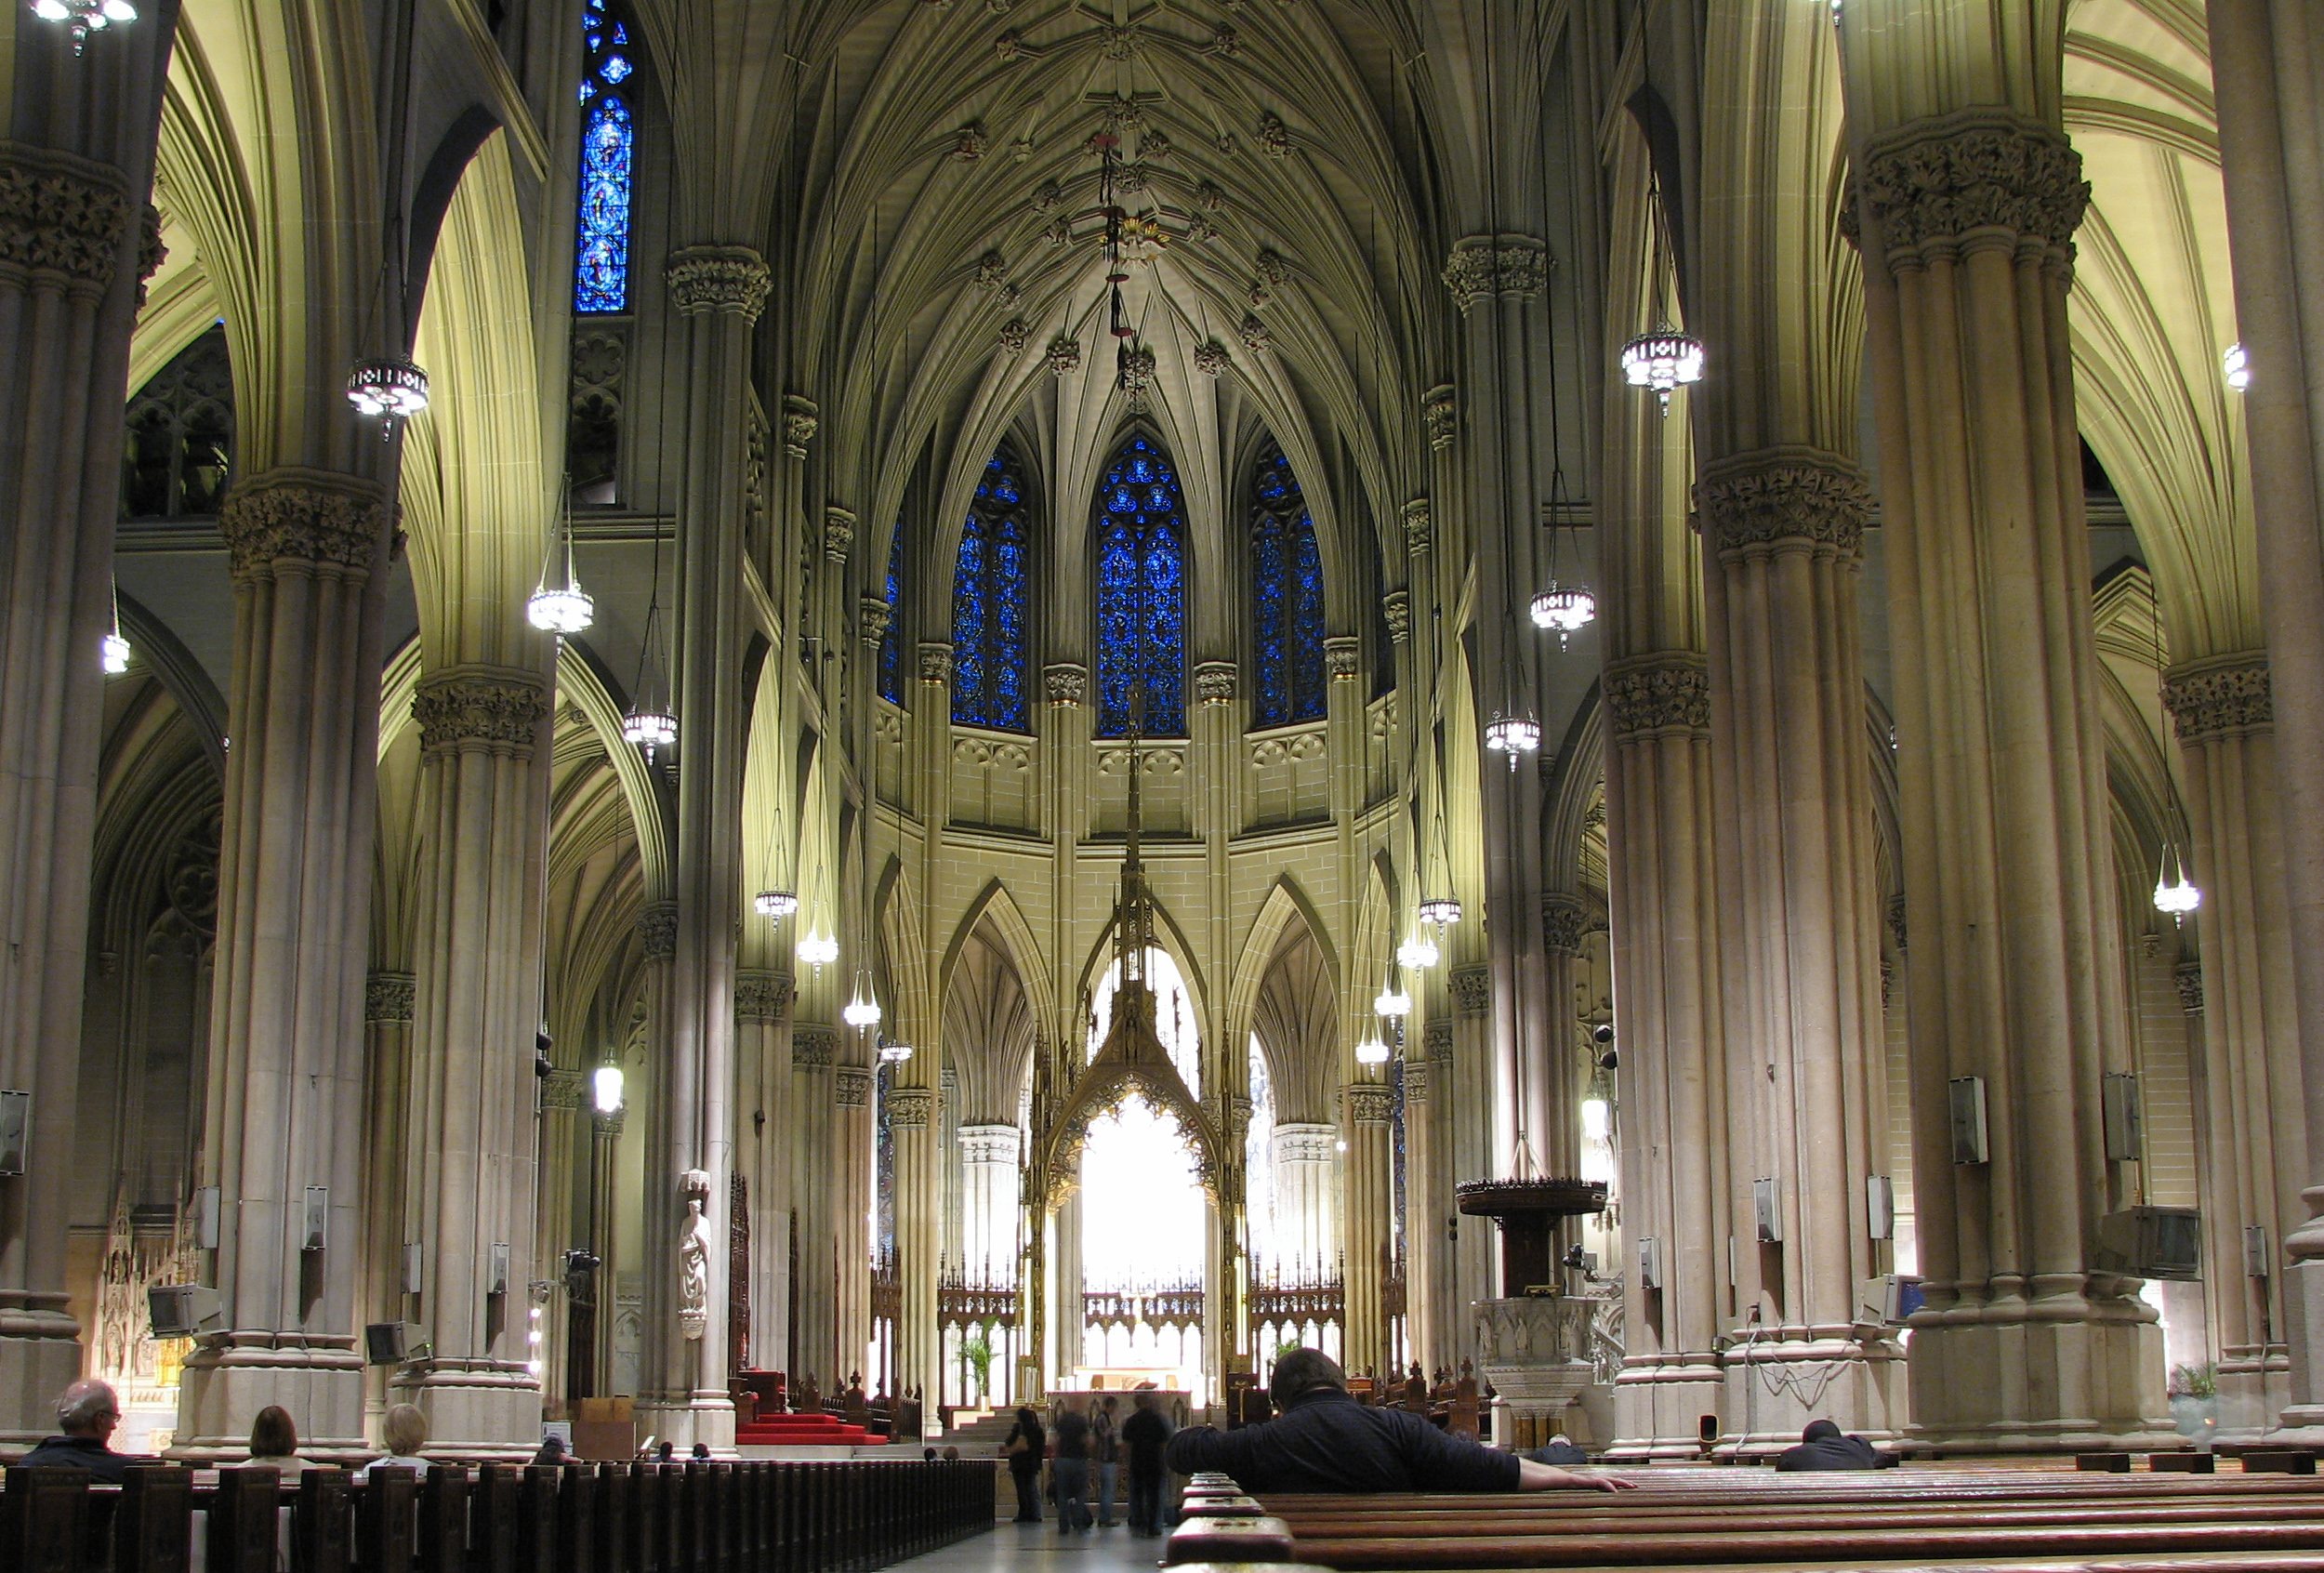 St. patricks cathedral photo